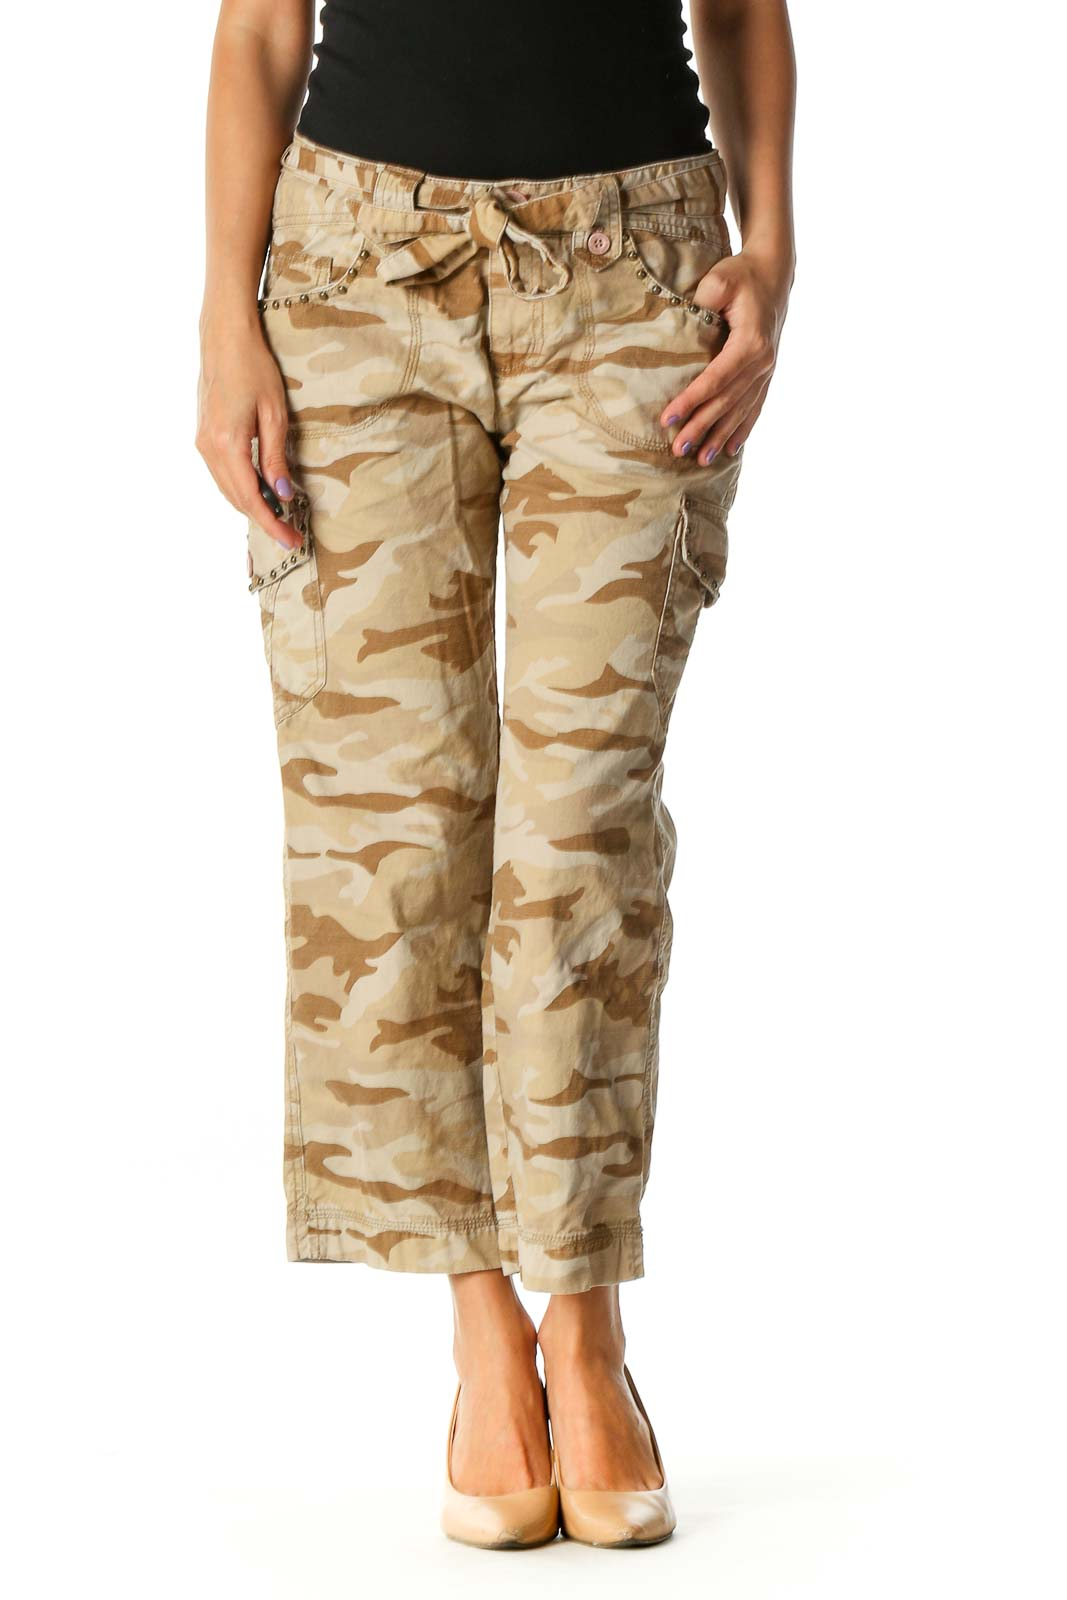 Beige Camouflage Print Casual Cargos Pants Front